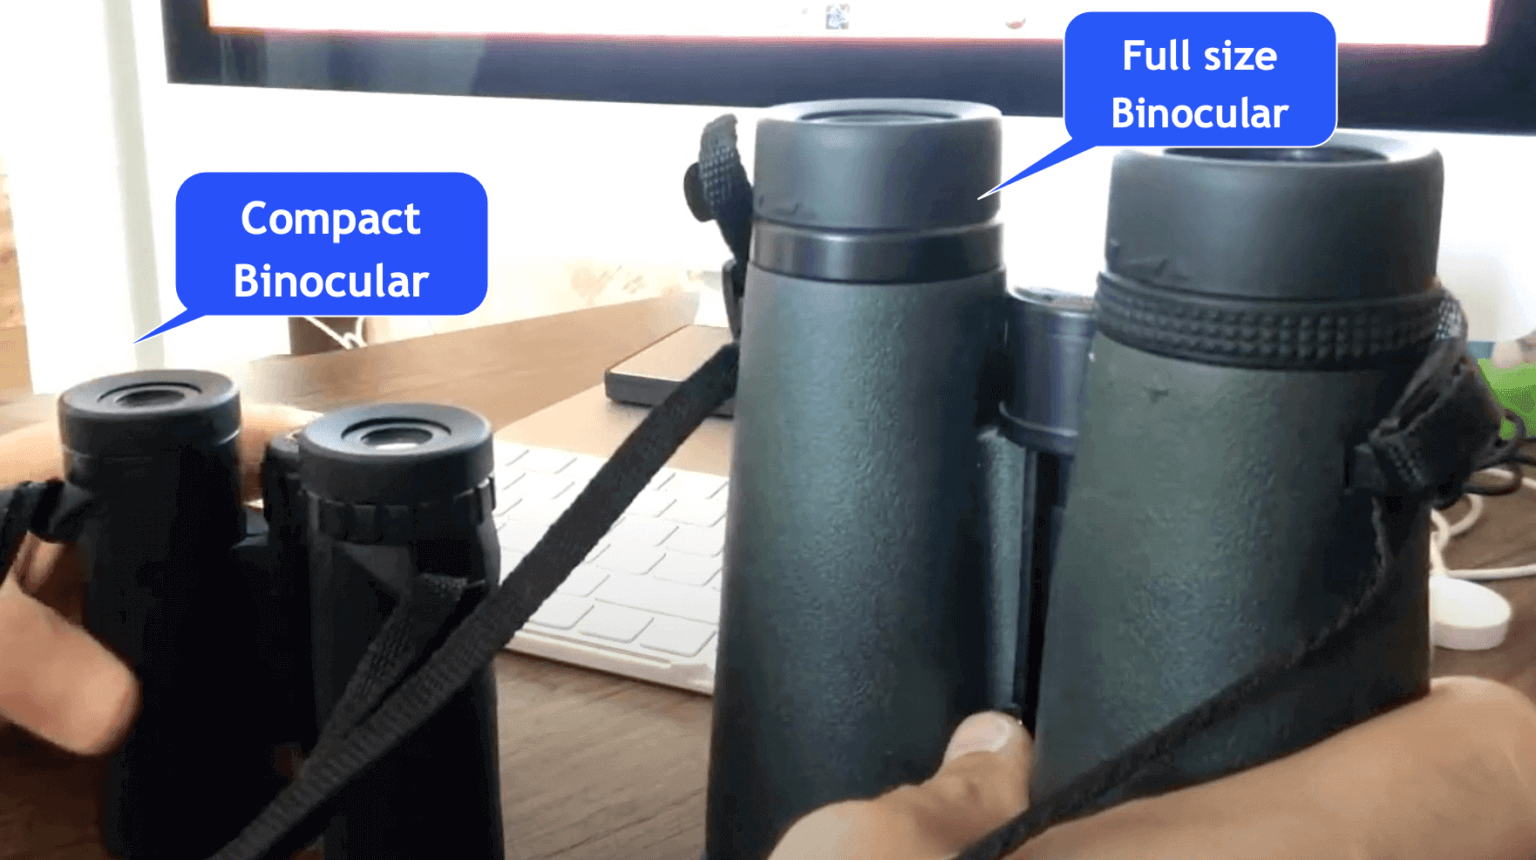 compact-and-full-size-binoculars